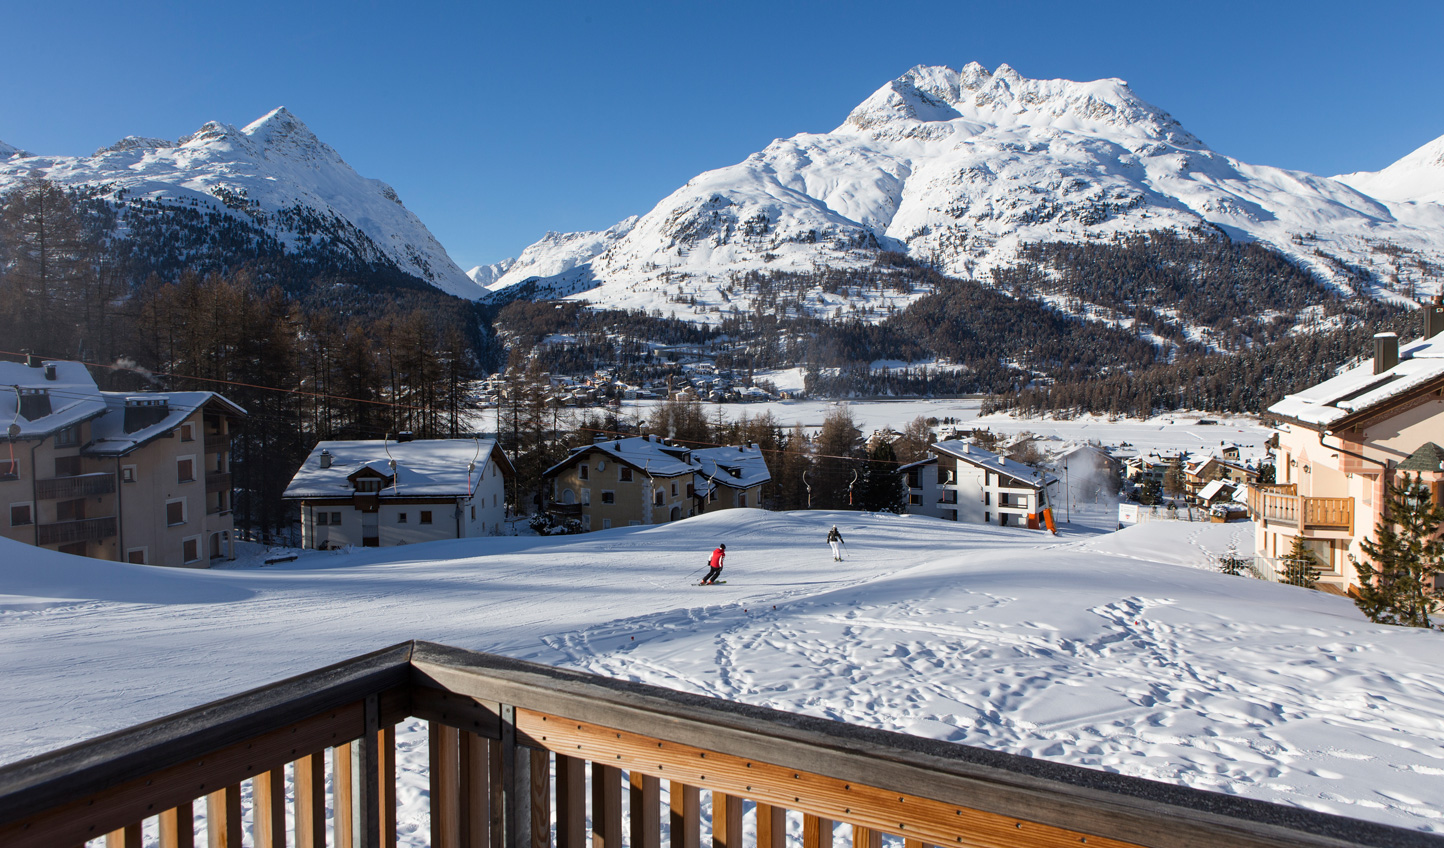 Get straight onto the slopes with ski-in-ski-out access